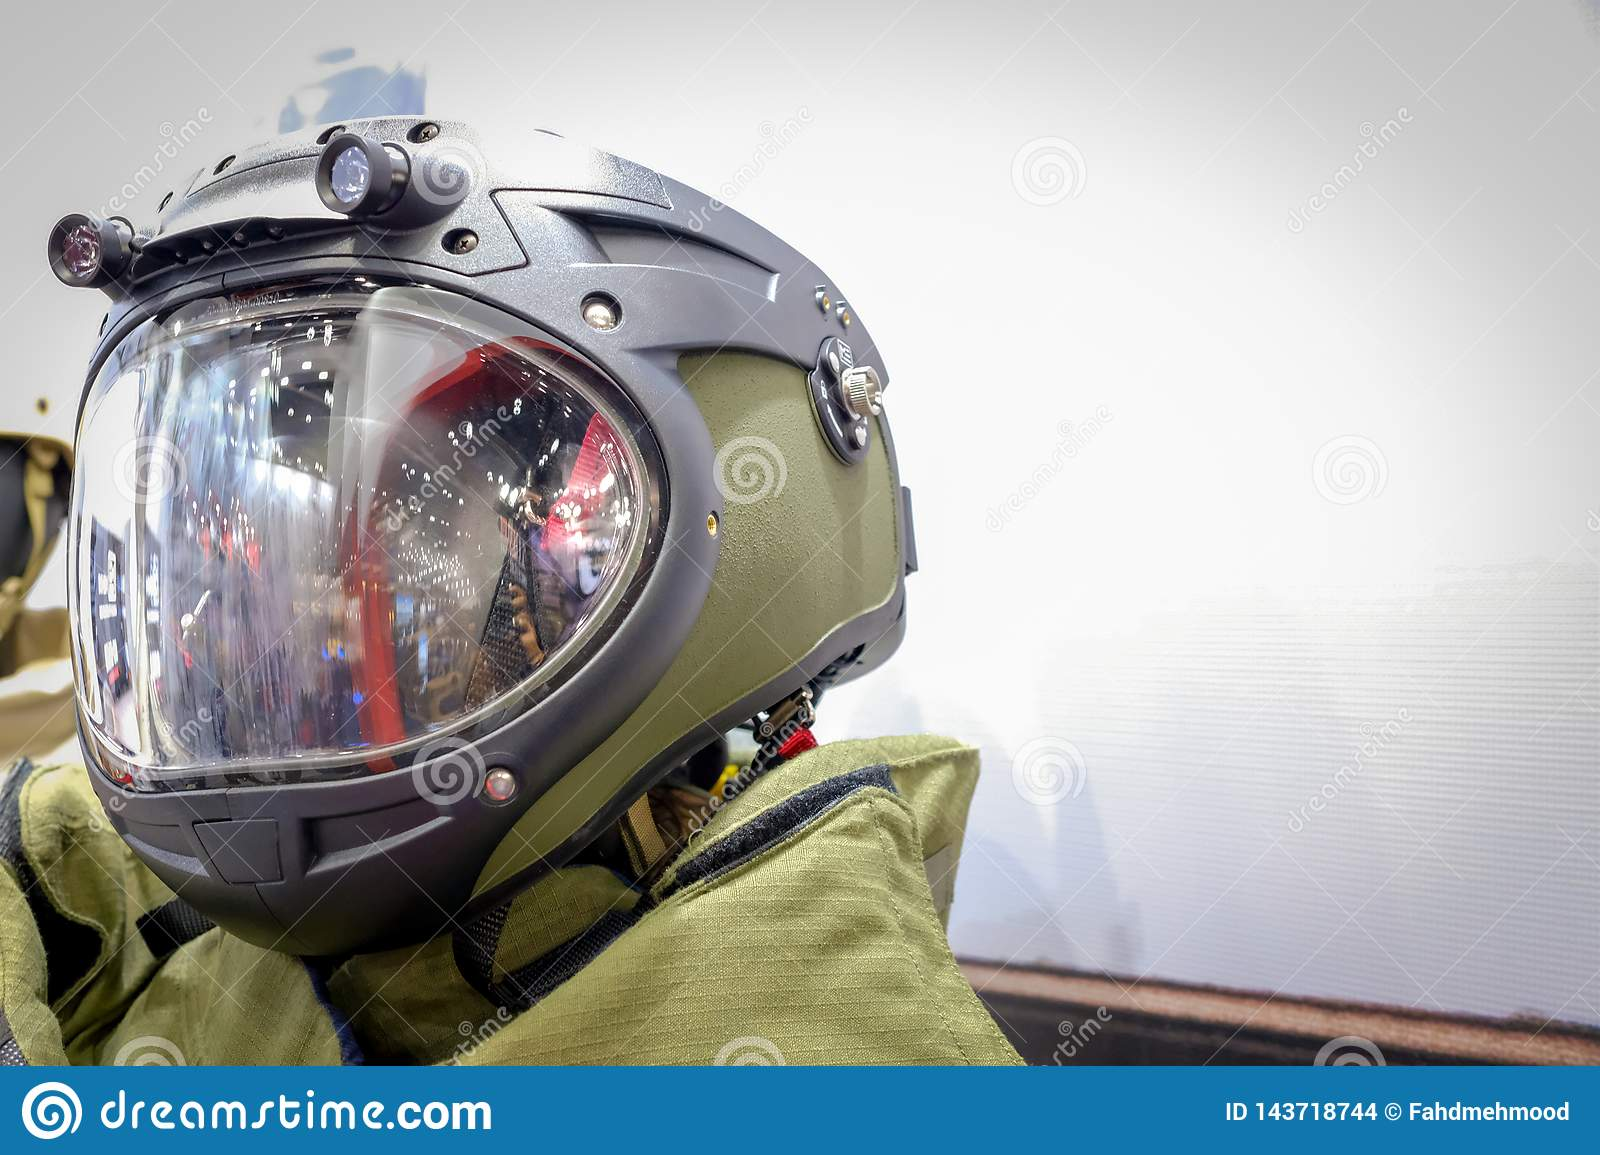 Head shot of a Army Space suit